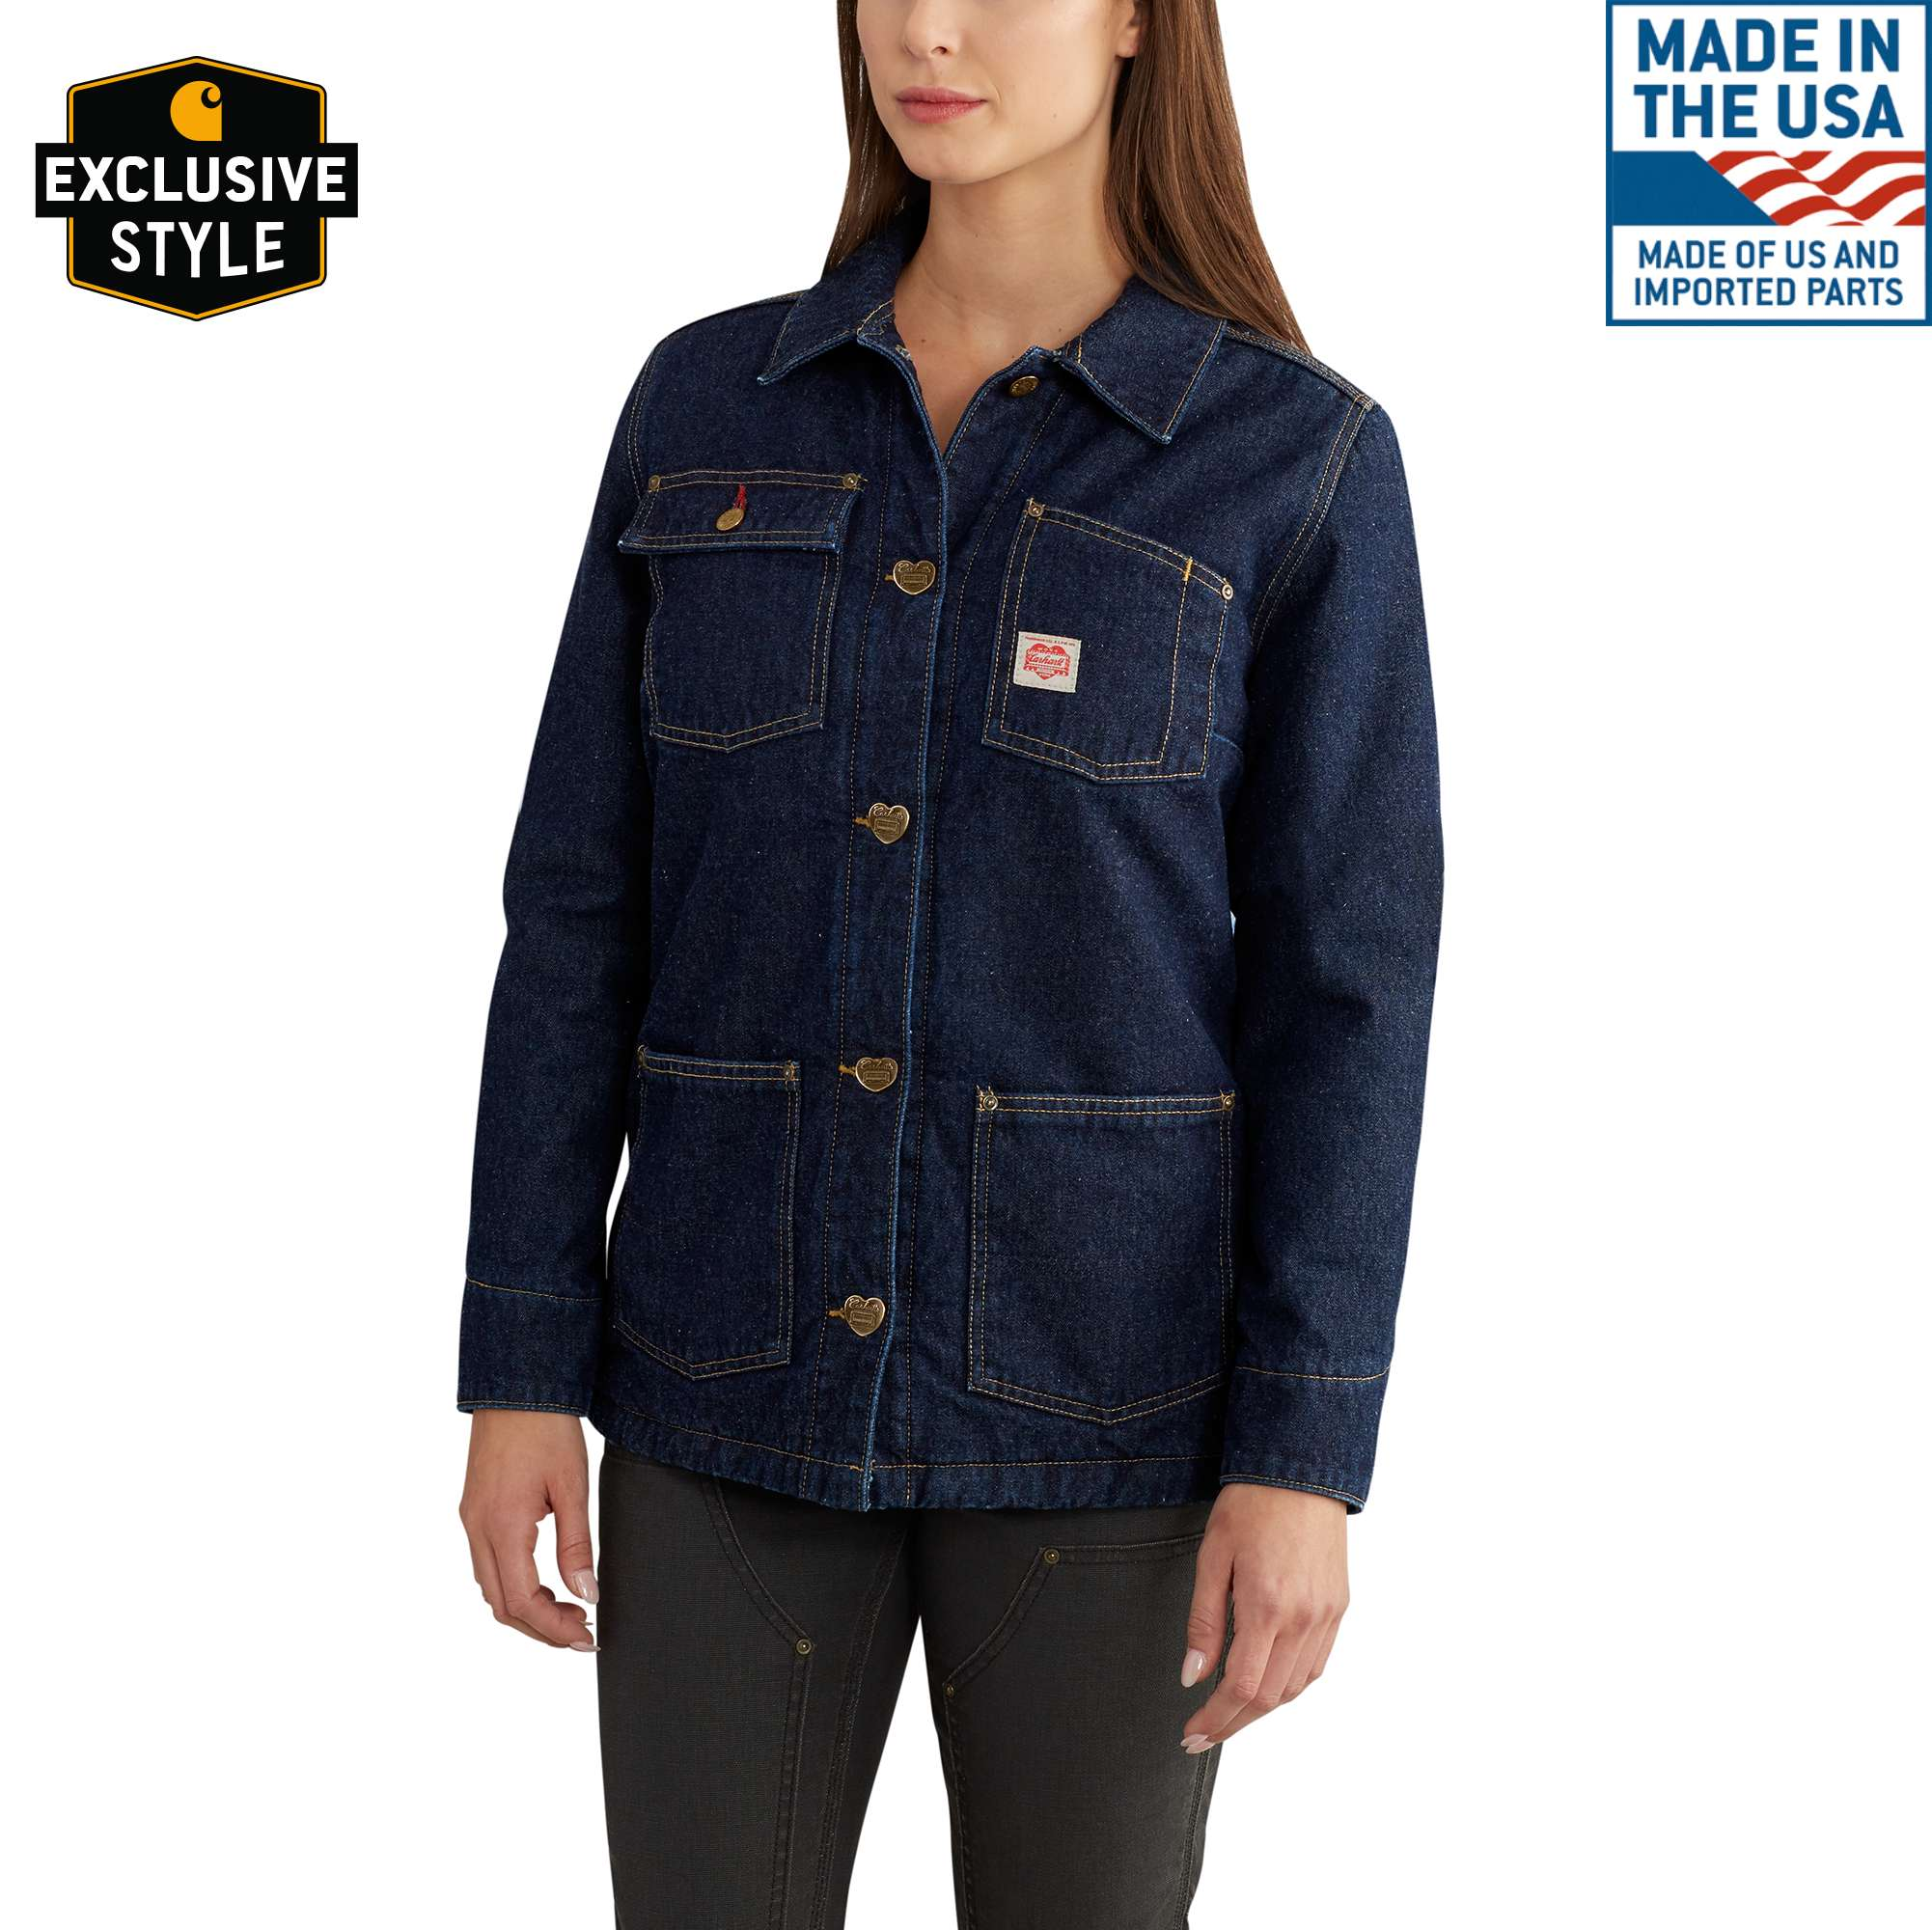 Carhartt Women's Heritage Denim Chore Coat Size: XL